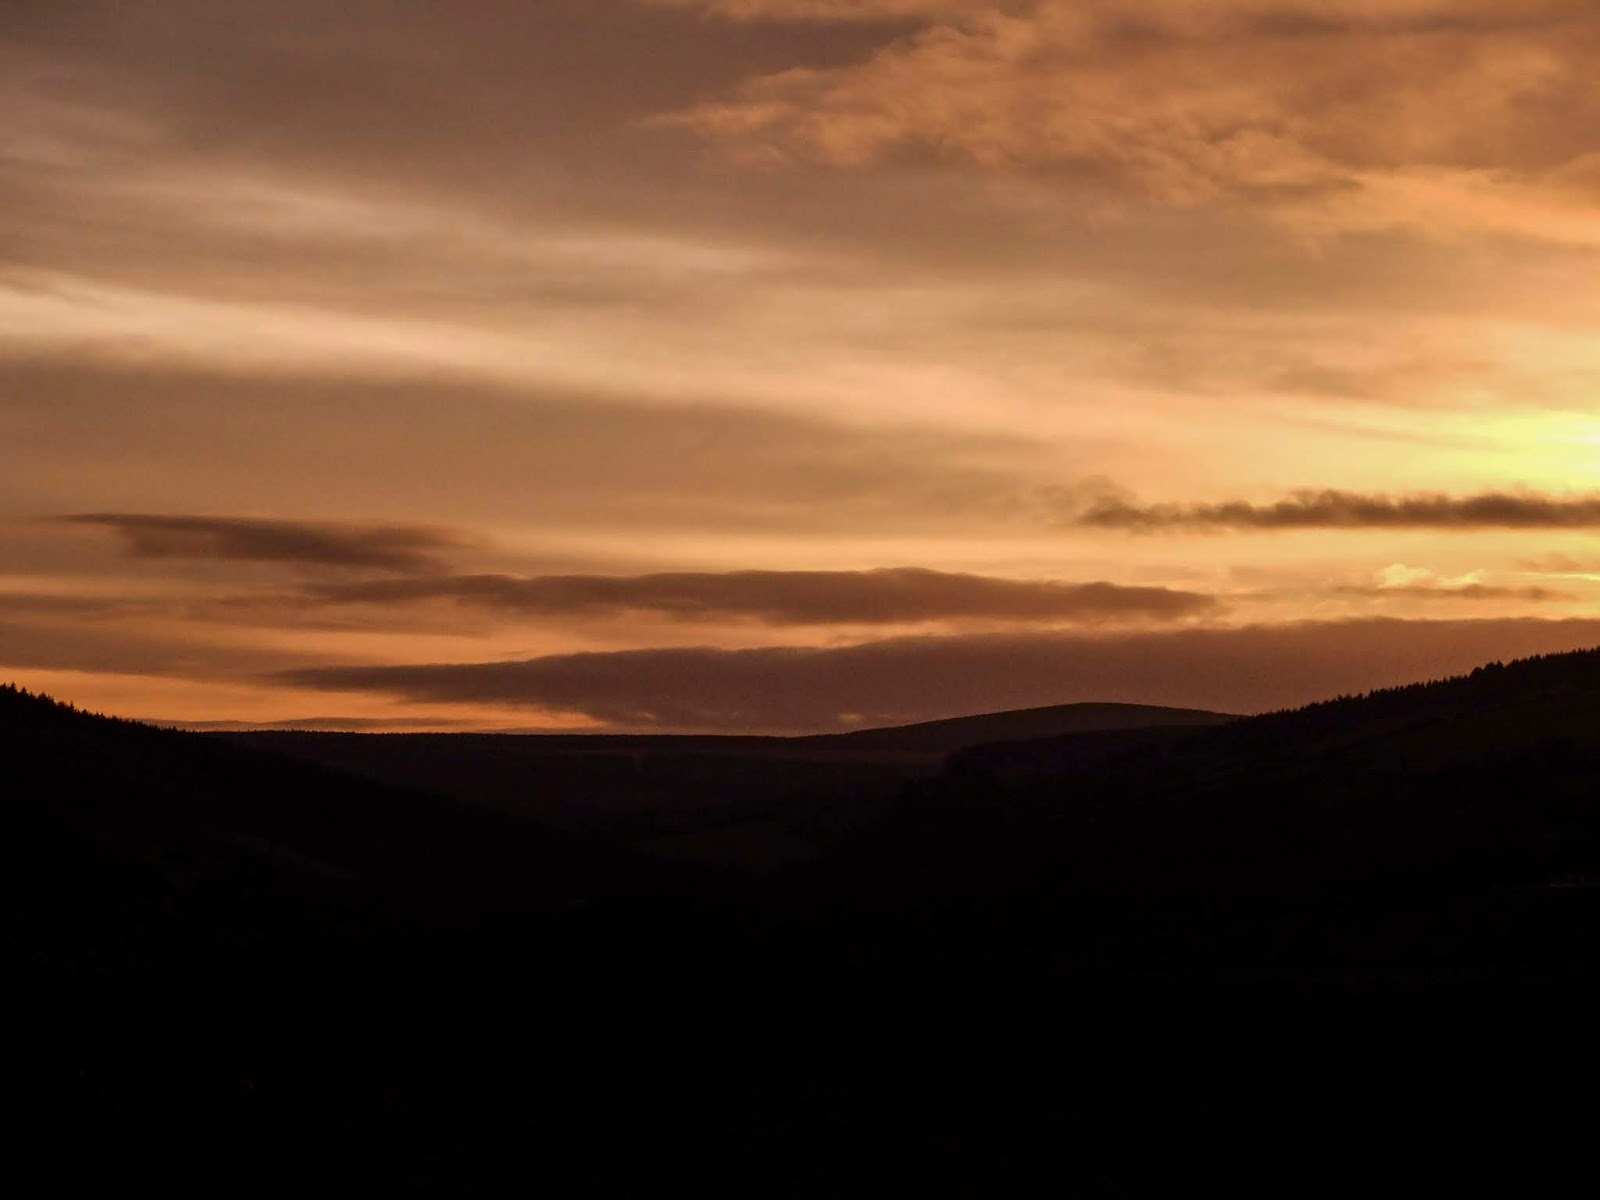 Sunset over a mountain landscape of North Cork.